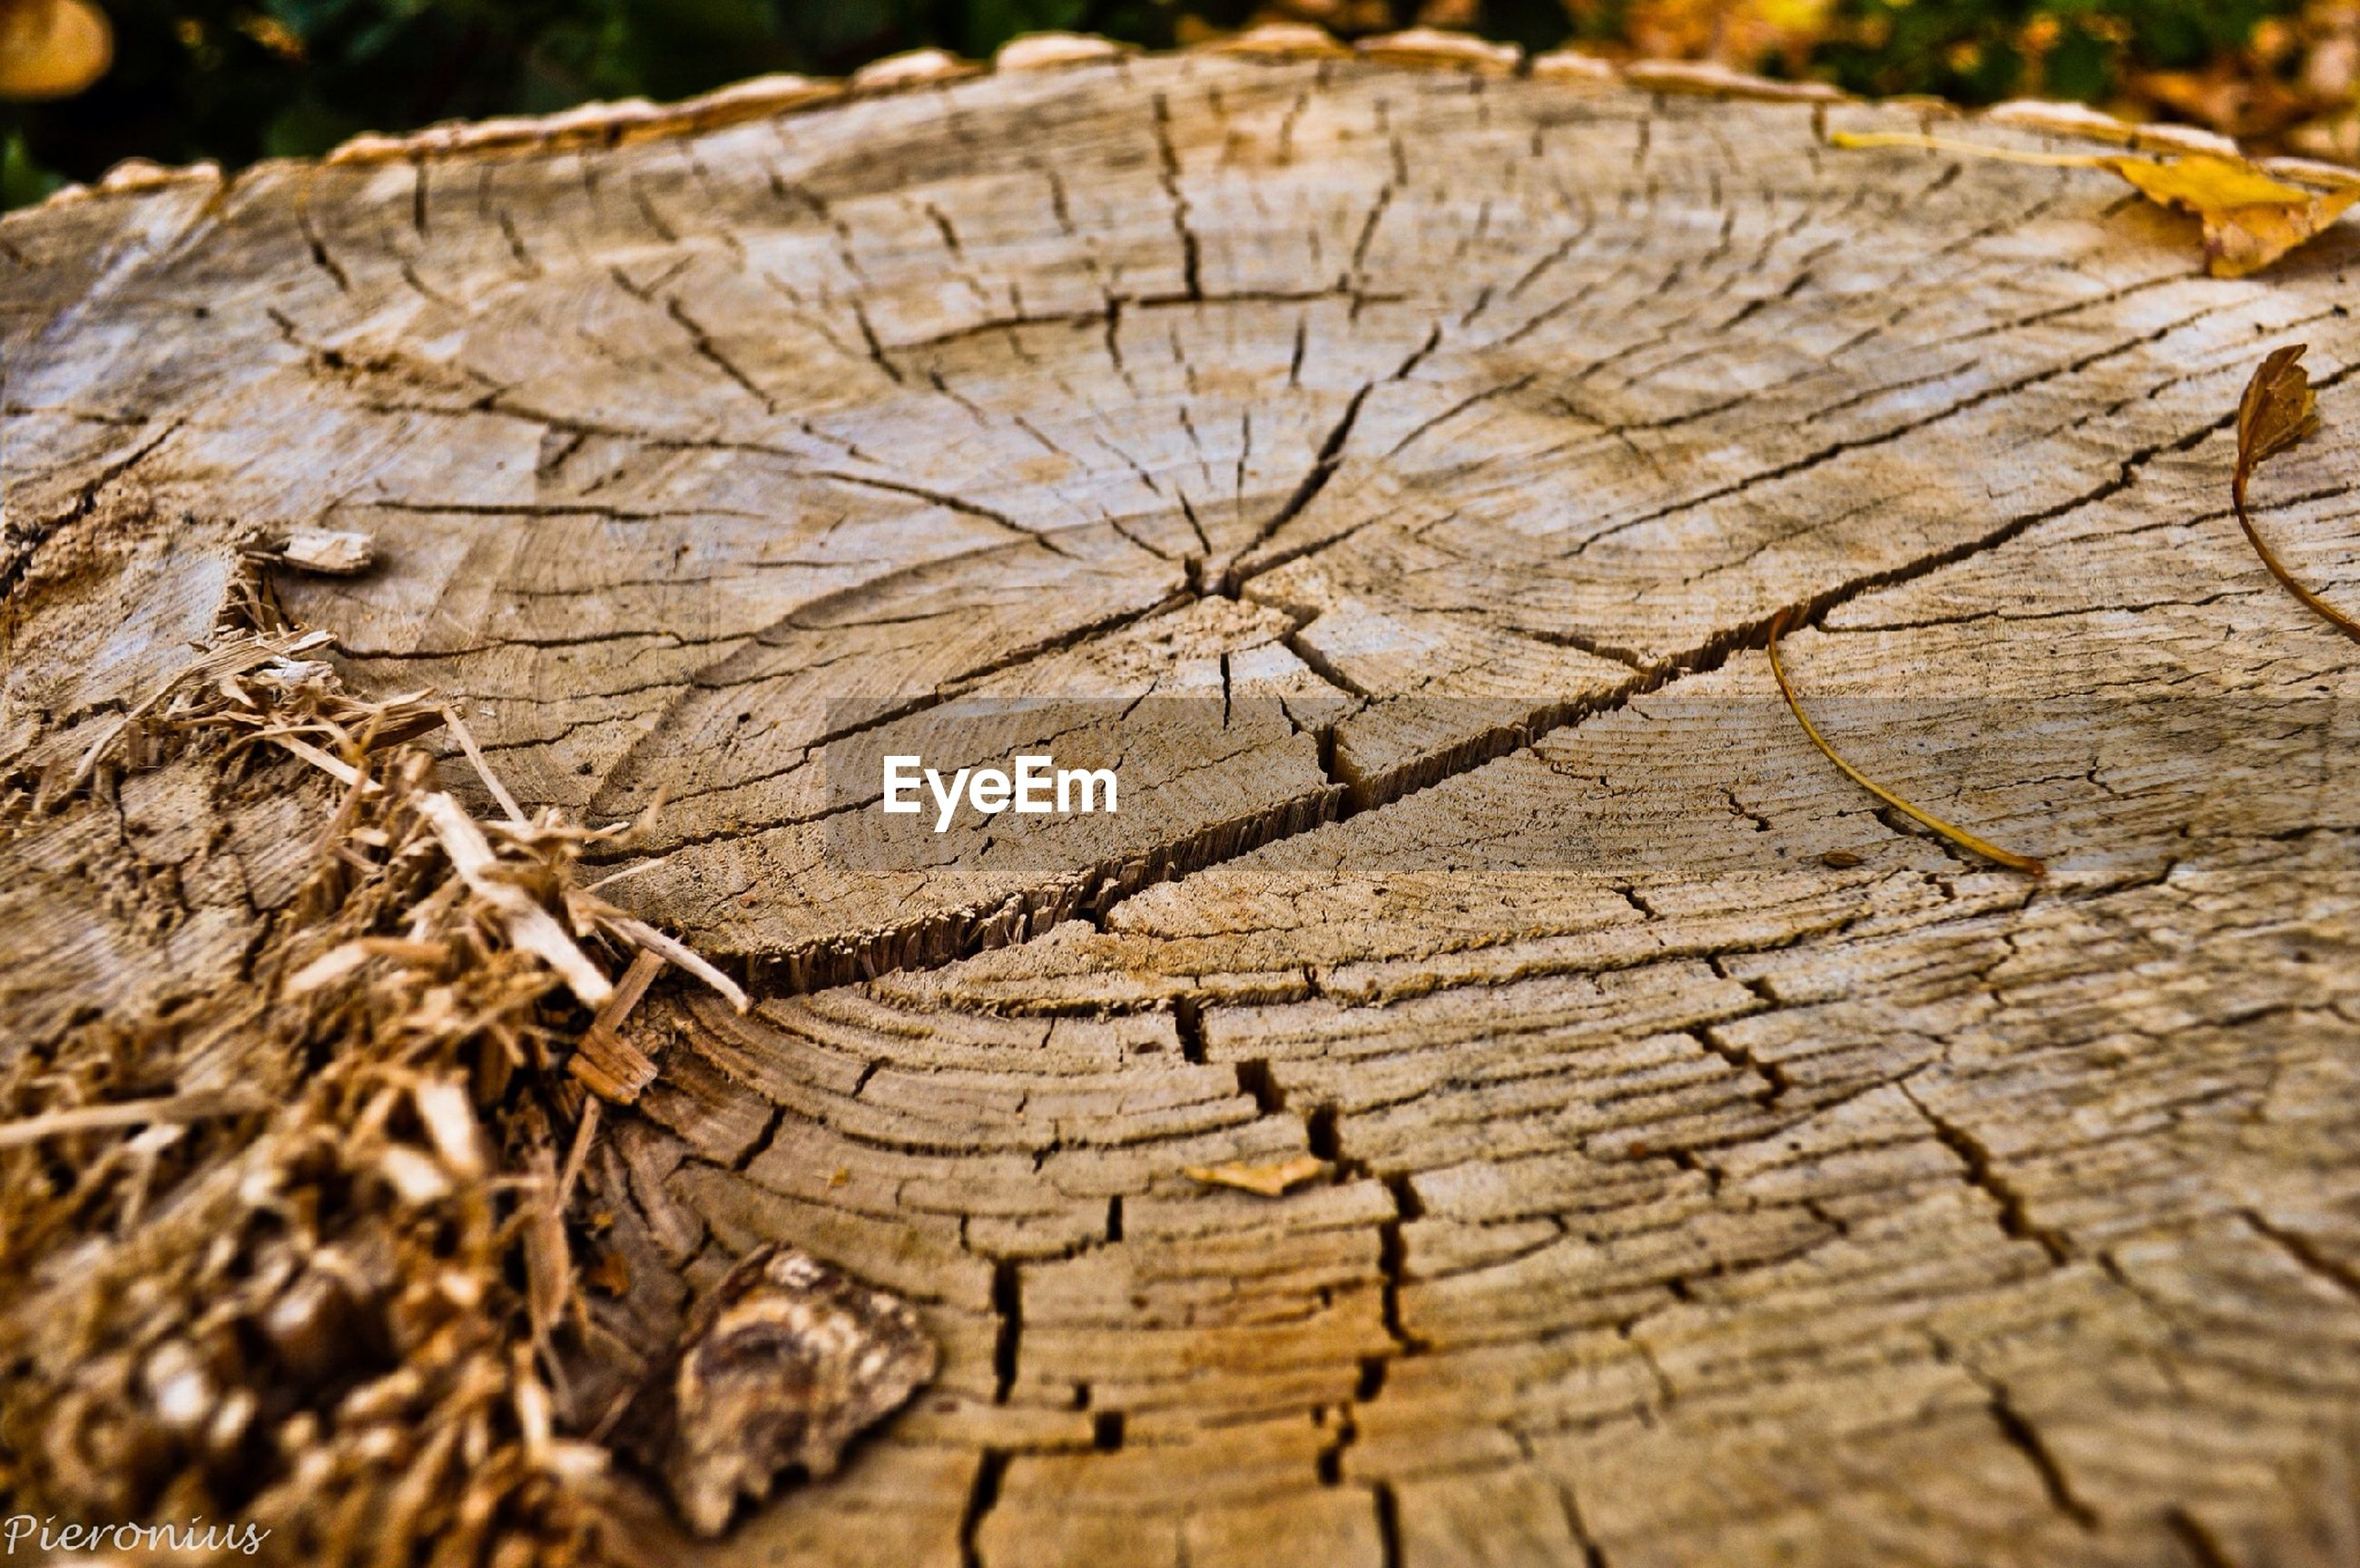 close-up, textured, natural pattern, wood - material, dry, pattern, nature, tree stump, leaf, brown, rough, full frame, cracked, focus on foreground, selective focus, fragility, day, log, outdoors, backgrounds